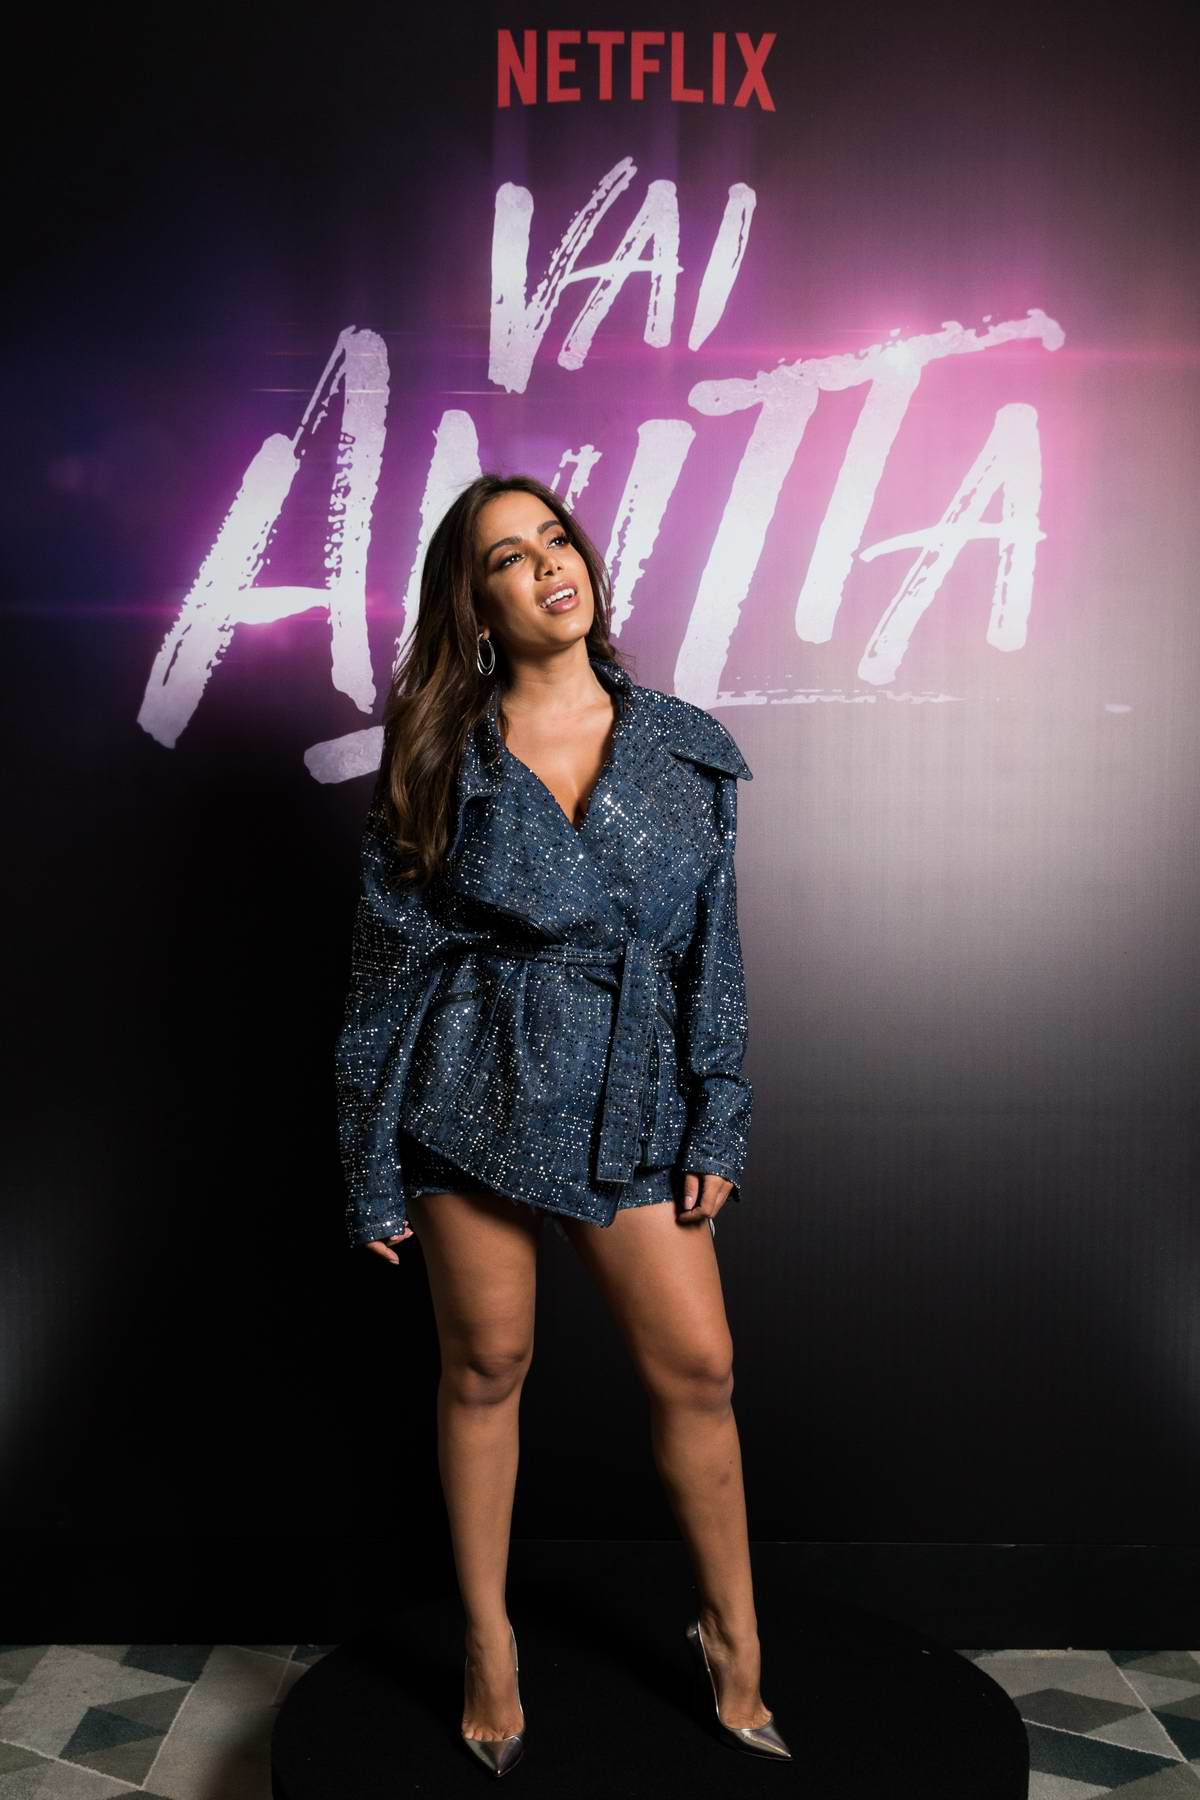 Anitta attends the Netflix Vai, Anitta! Press Conference in Sao Paulo, Brazil